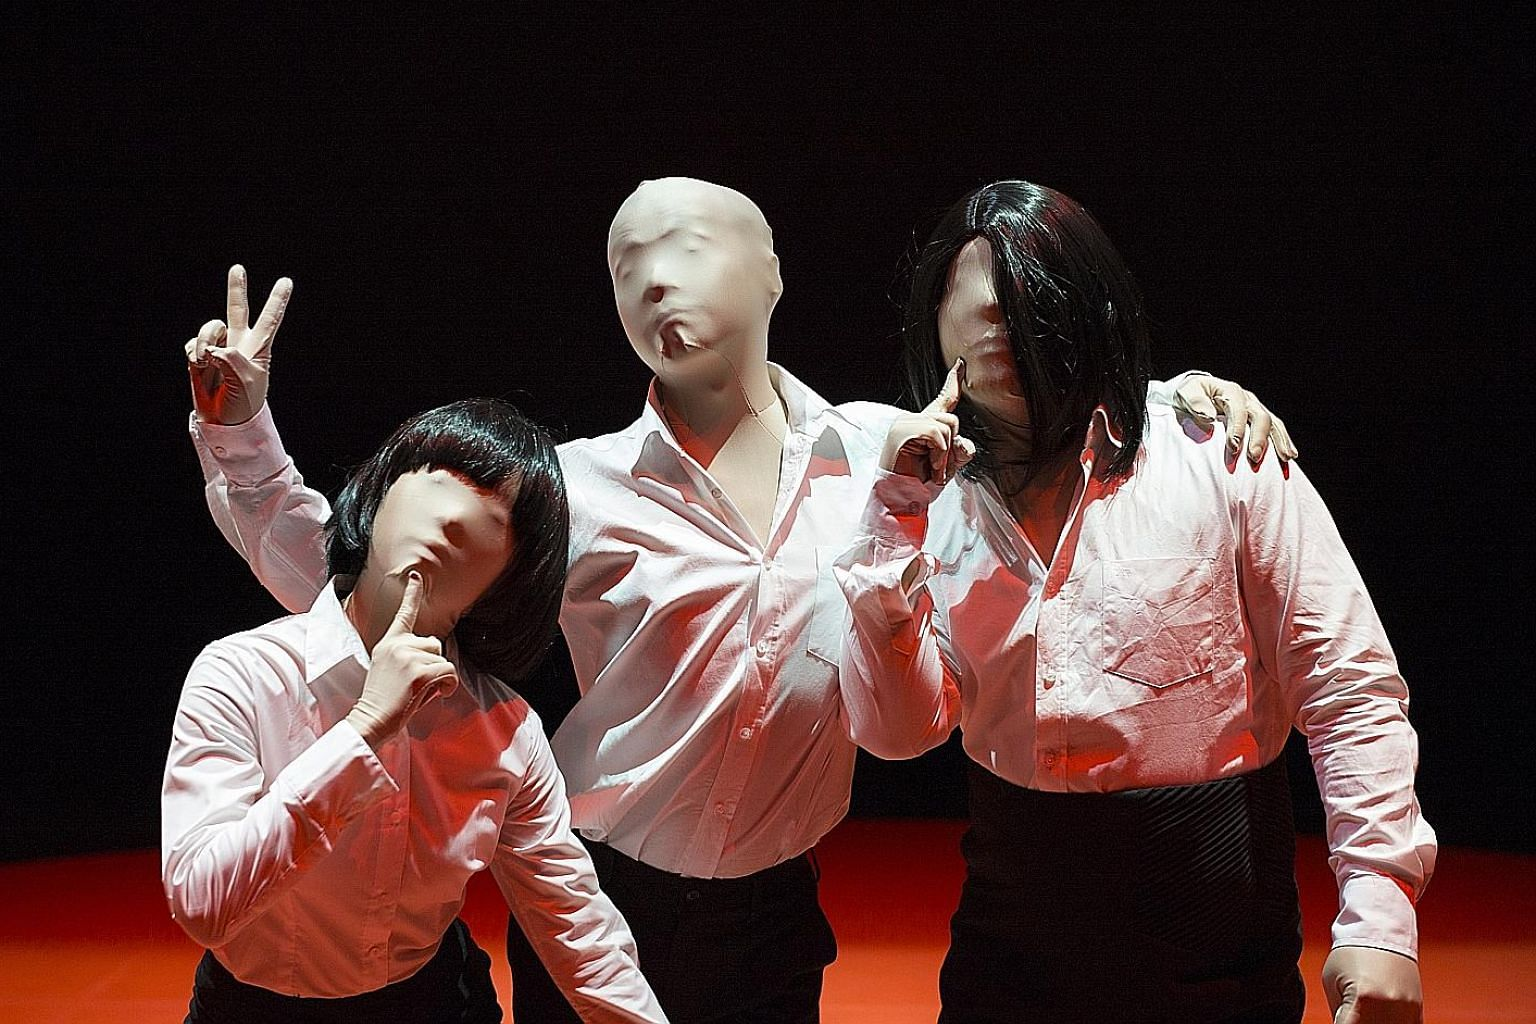 Skin Tight performers put on full bodysuits, an act in concealing and revealing.